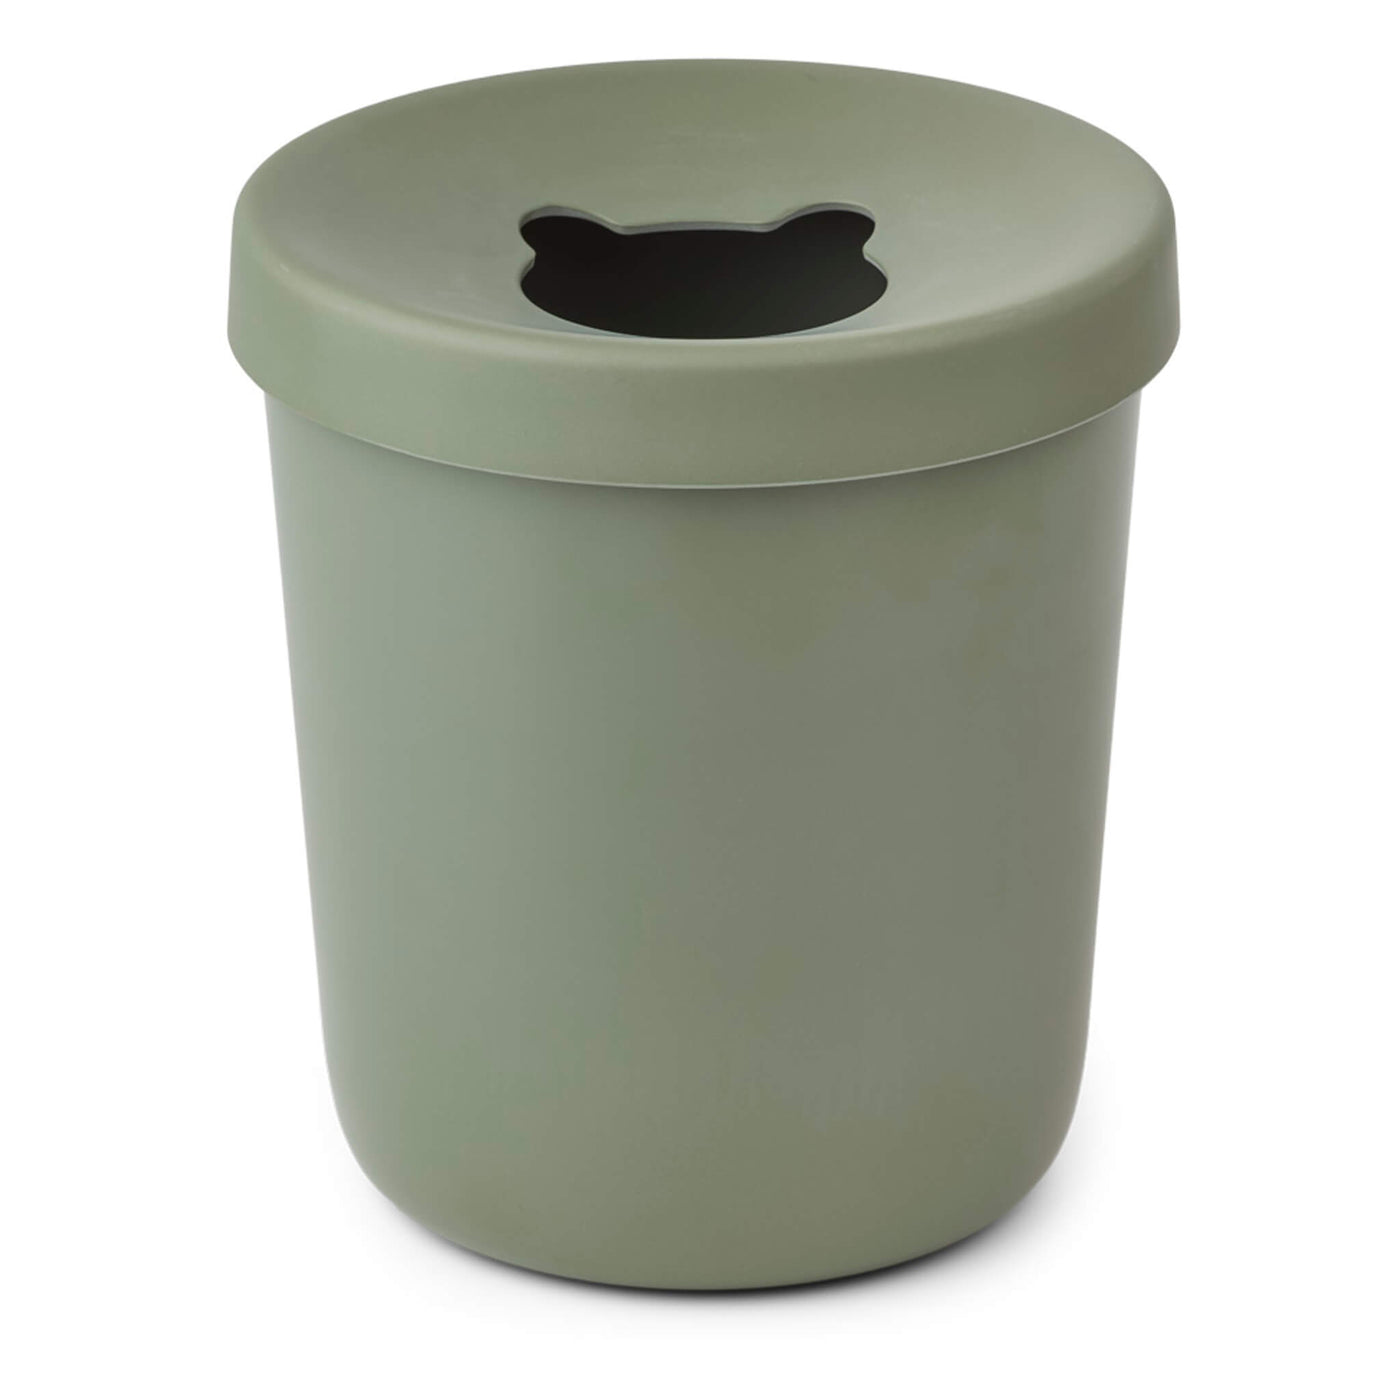 Evelina Trash Bin - Faune Green